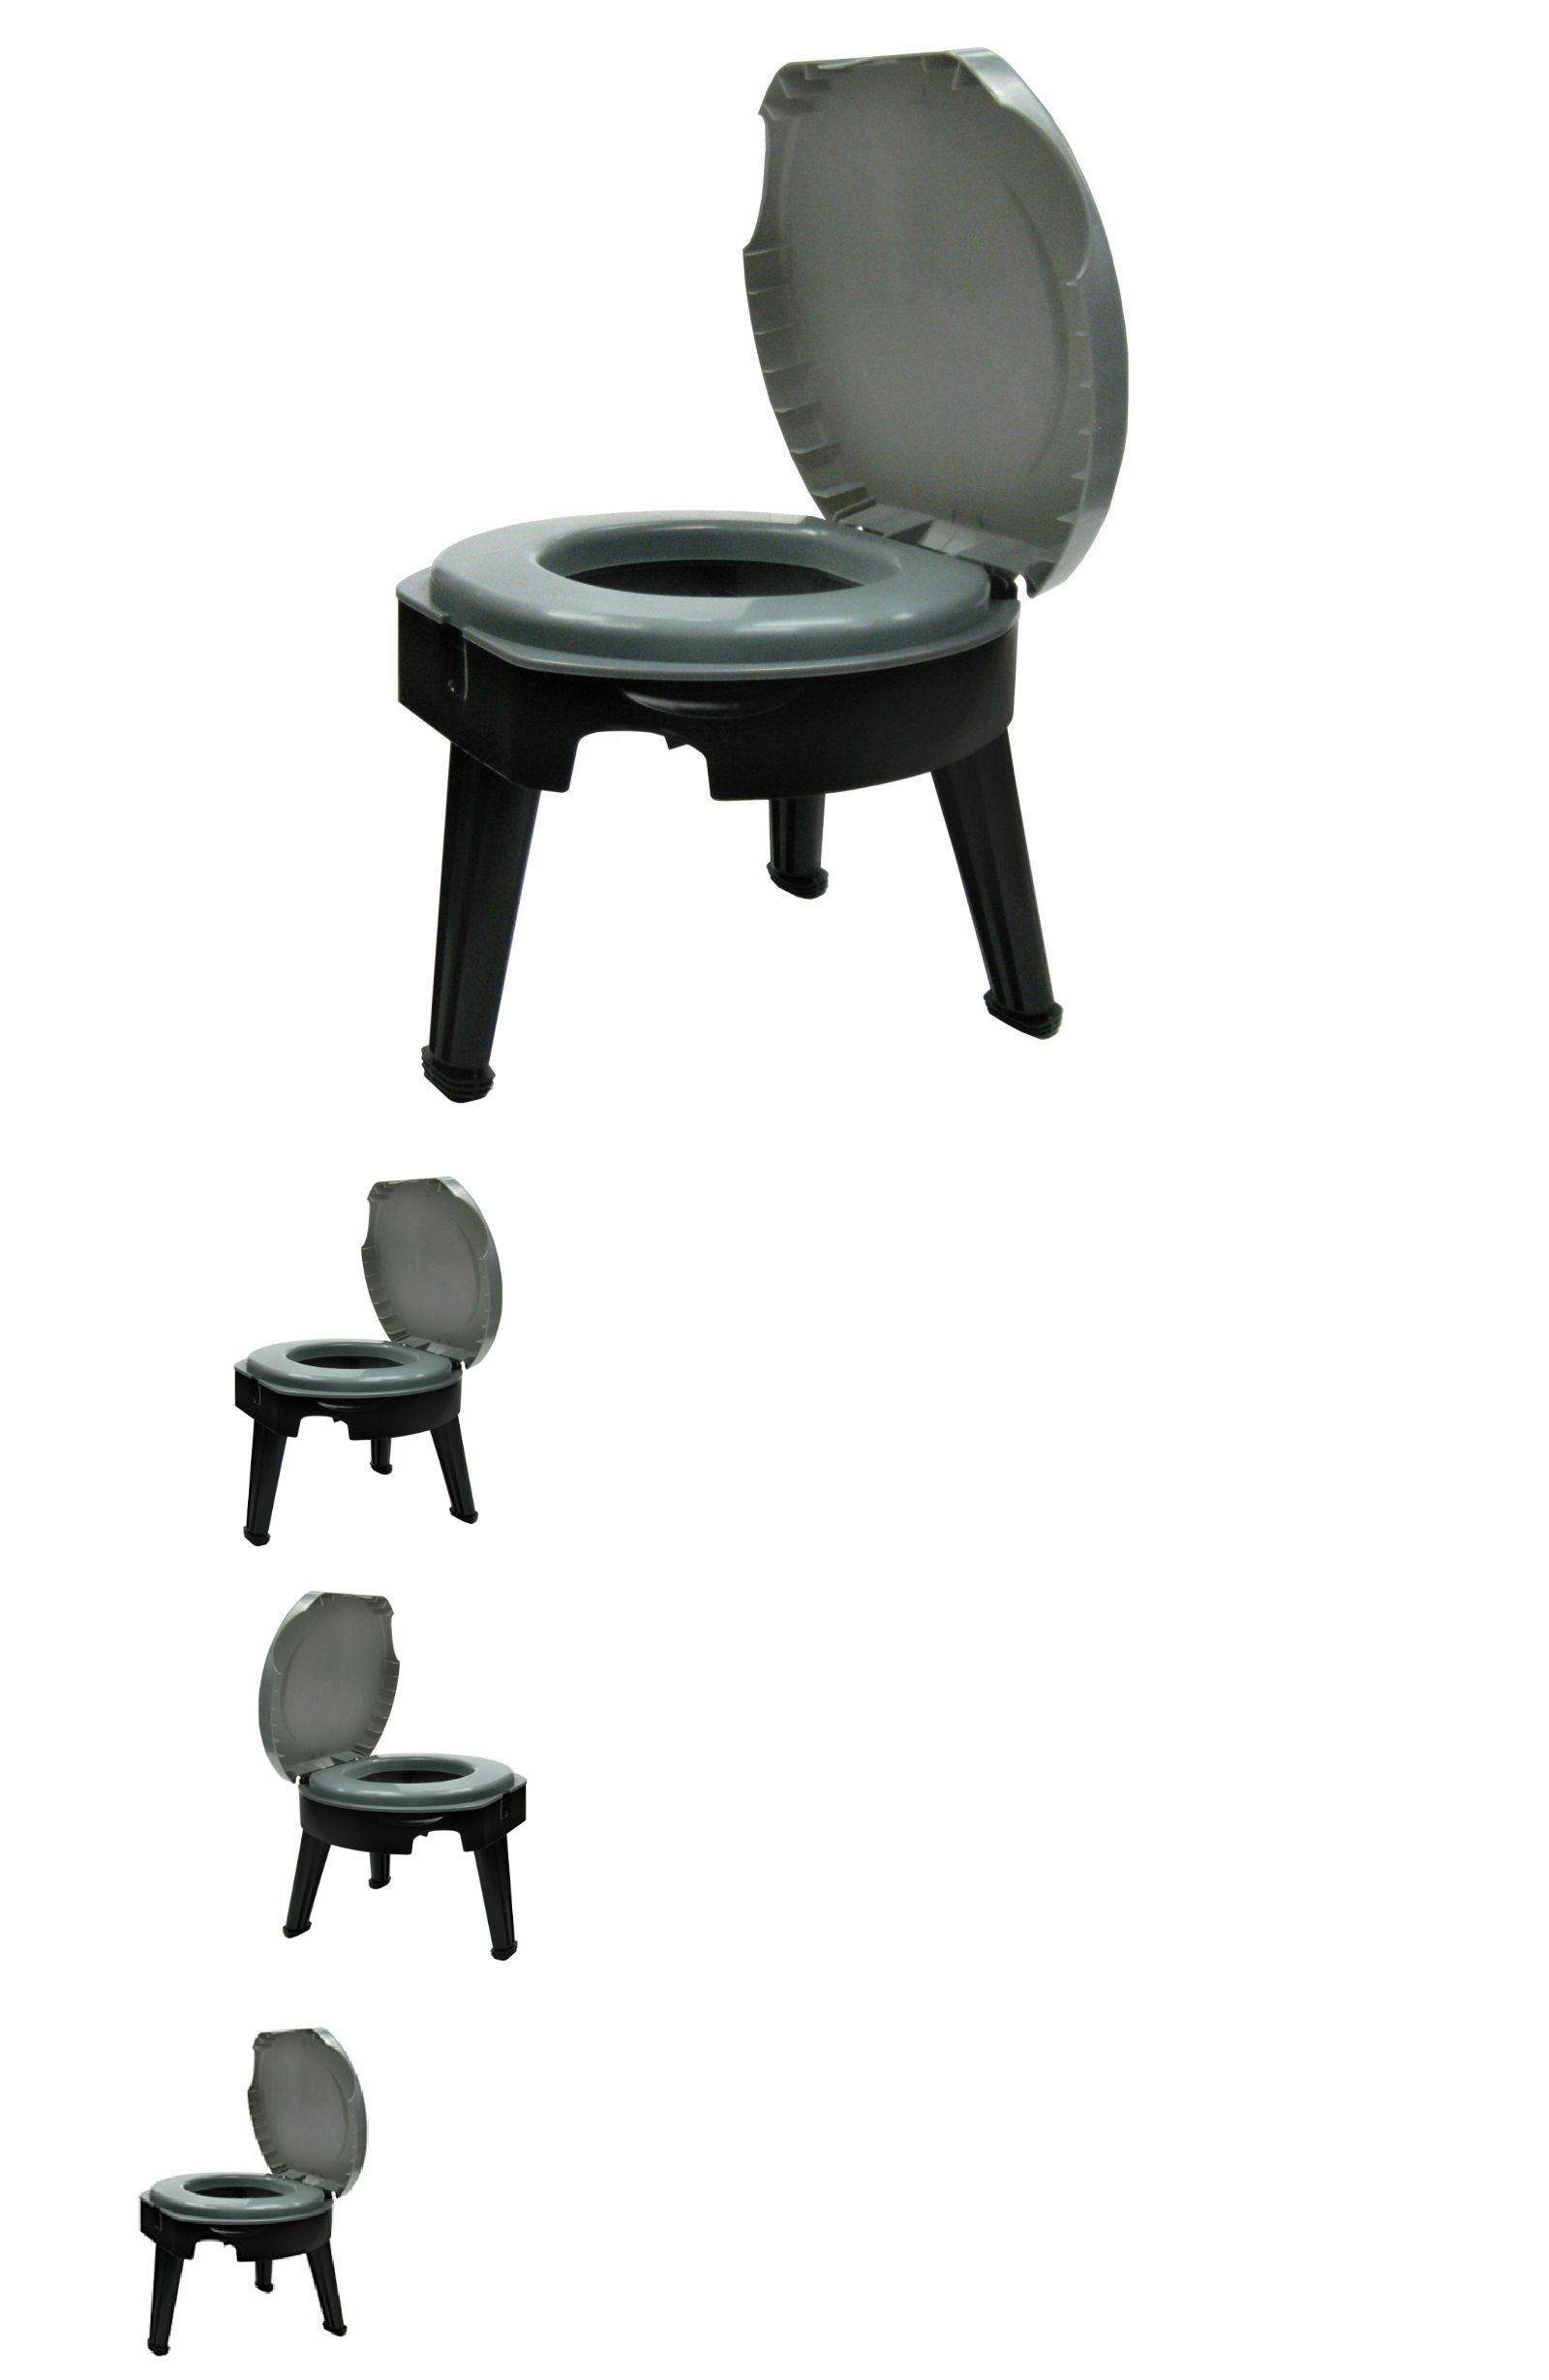 toilet seat for adults. Portable Toilets and Accessories 181397  Toilet Seat Camping Chair Wc Travel Outdoor Compatible Fold